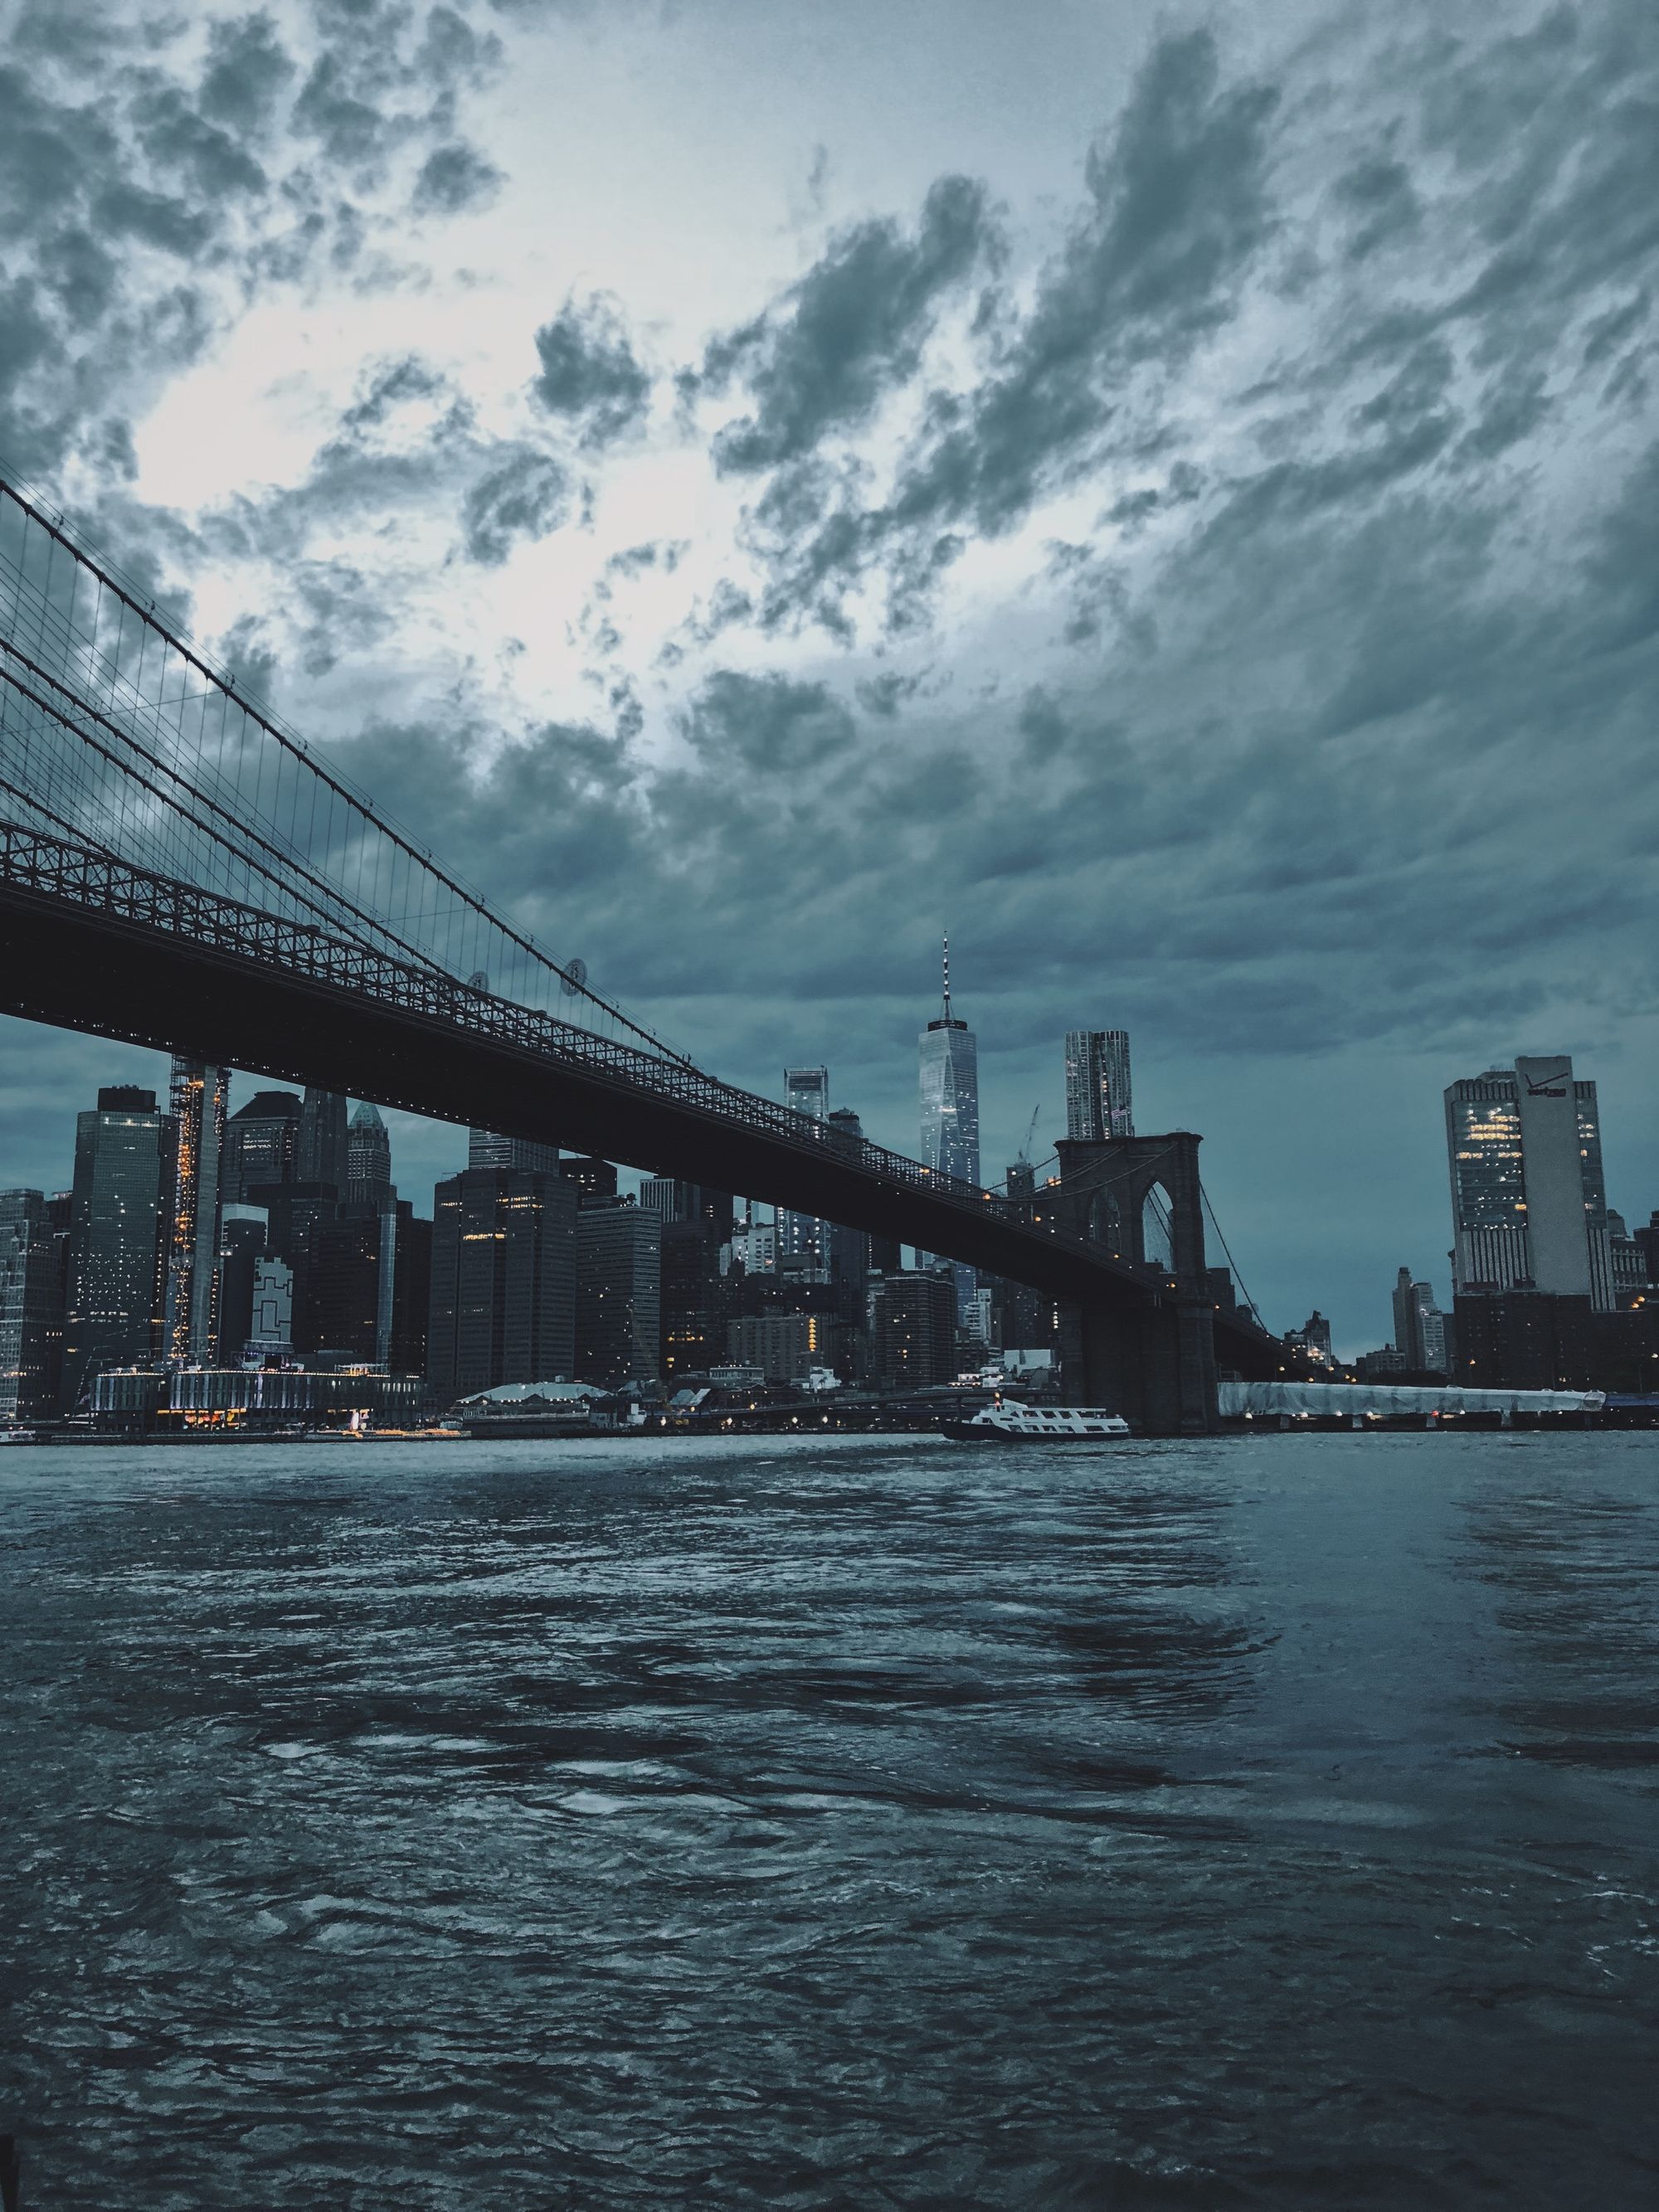 Finding Inspiration in Grief